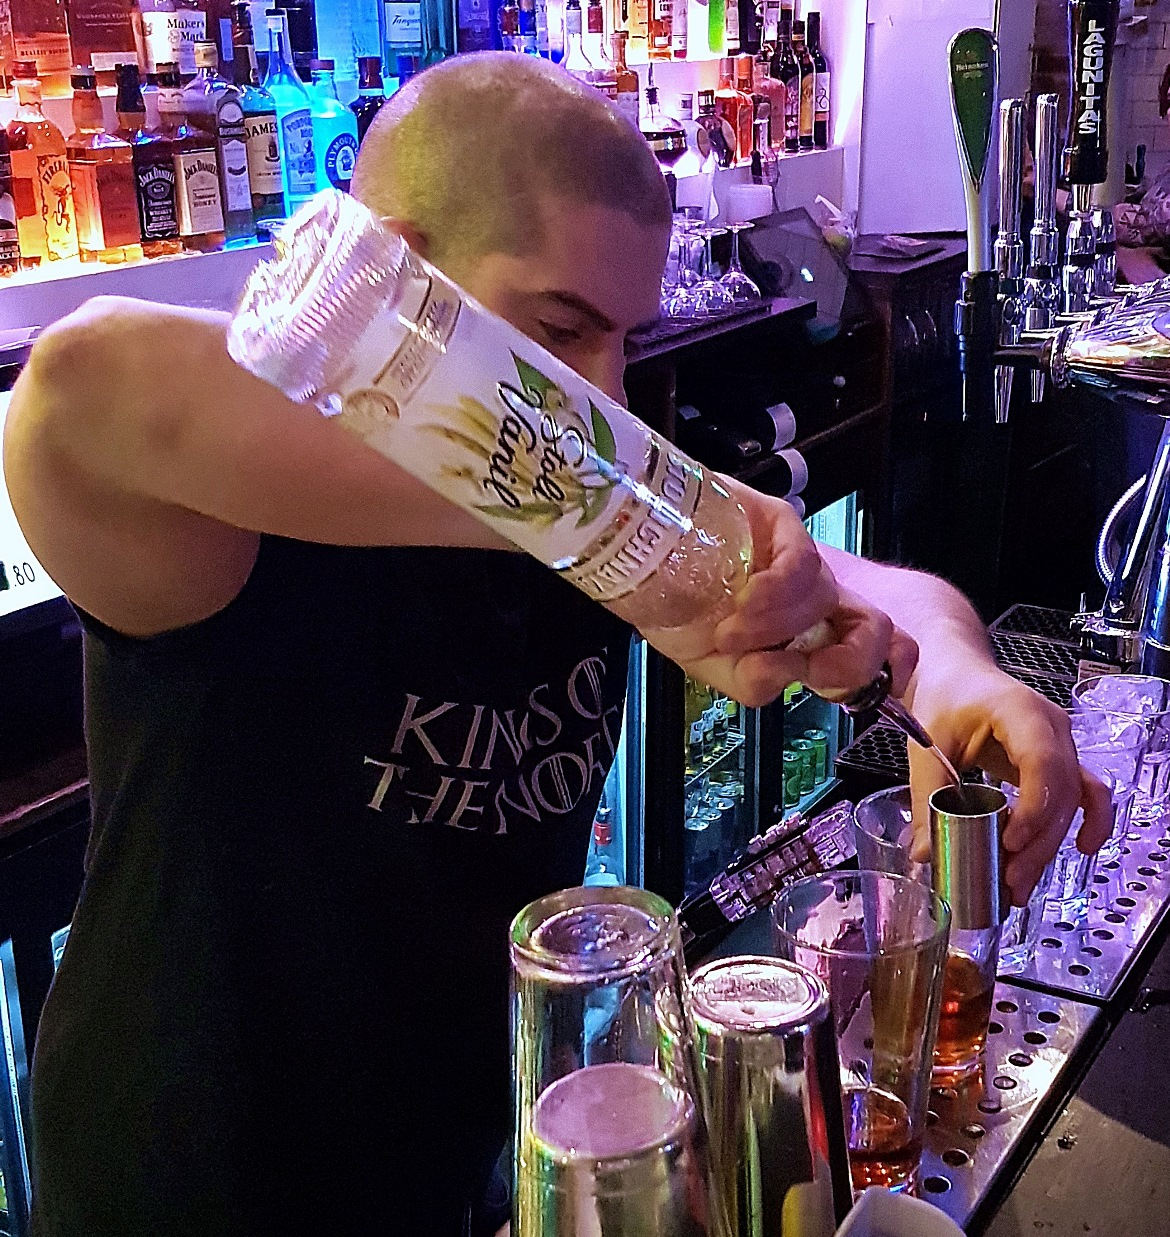 Our bartender - Cuckoo, the newest cocktail and pizza bar on Call Lane in Leeds - Bar Review by BeckyBecky Blogs